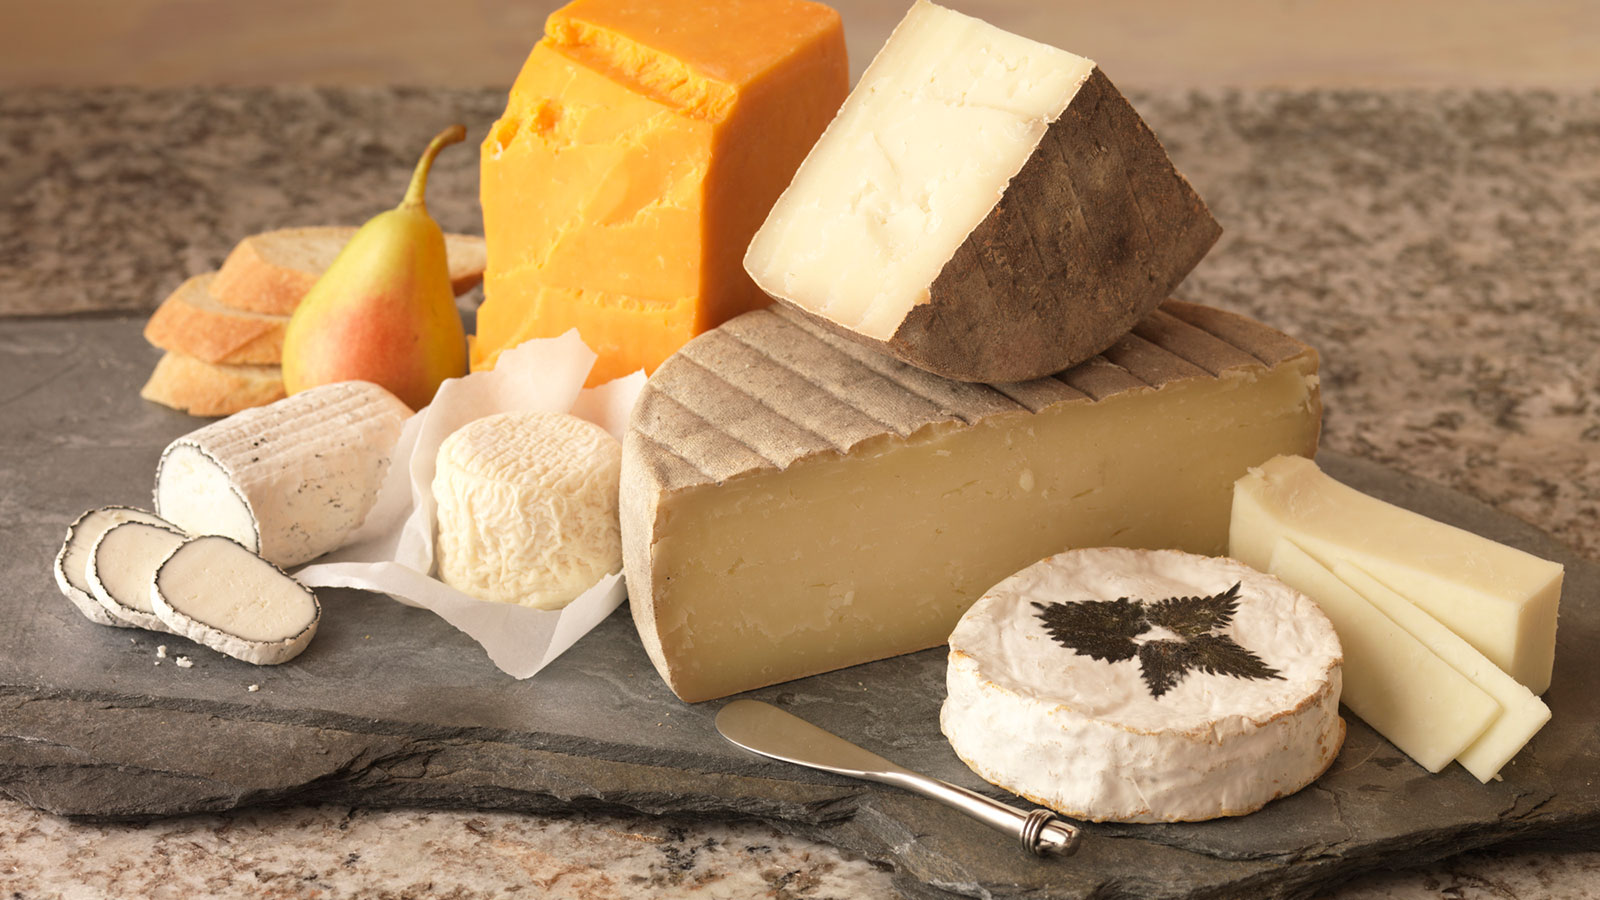 Different Types of Cheese | HowStuffWorks